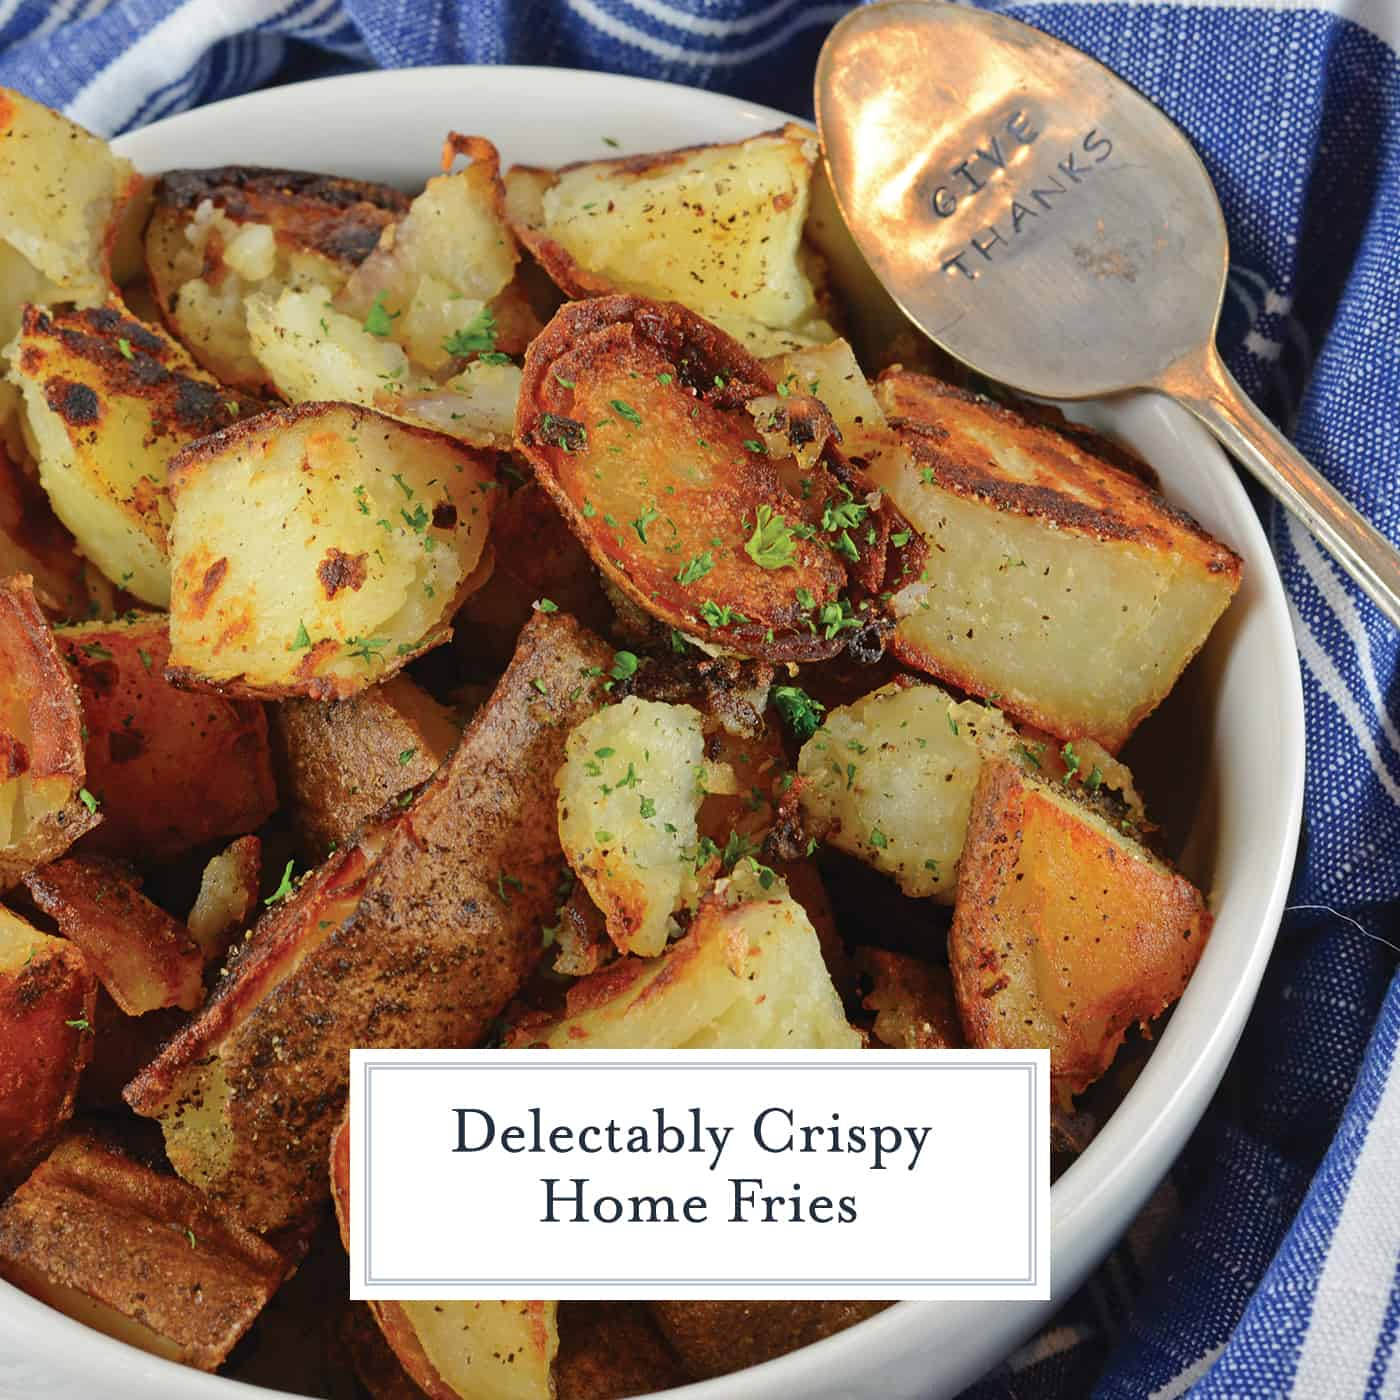 Make Crispy Home Fries like at the restaurant right at home! My recipe is super crispy, and has a secret ingredient that makes them the best potatoes ever! #breakfastpotatoes #howtomakehomefries #potatorecipes www.savoryexperiments.com